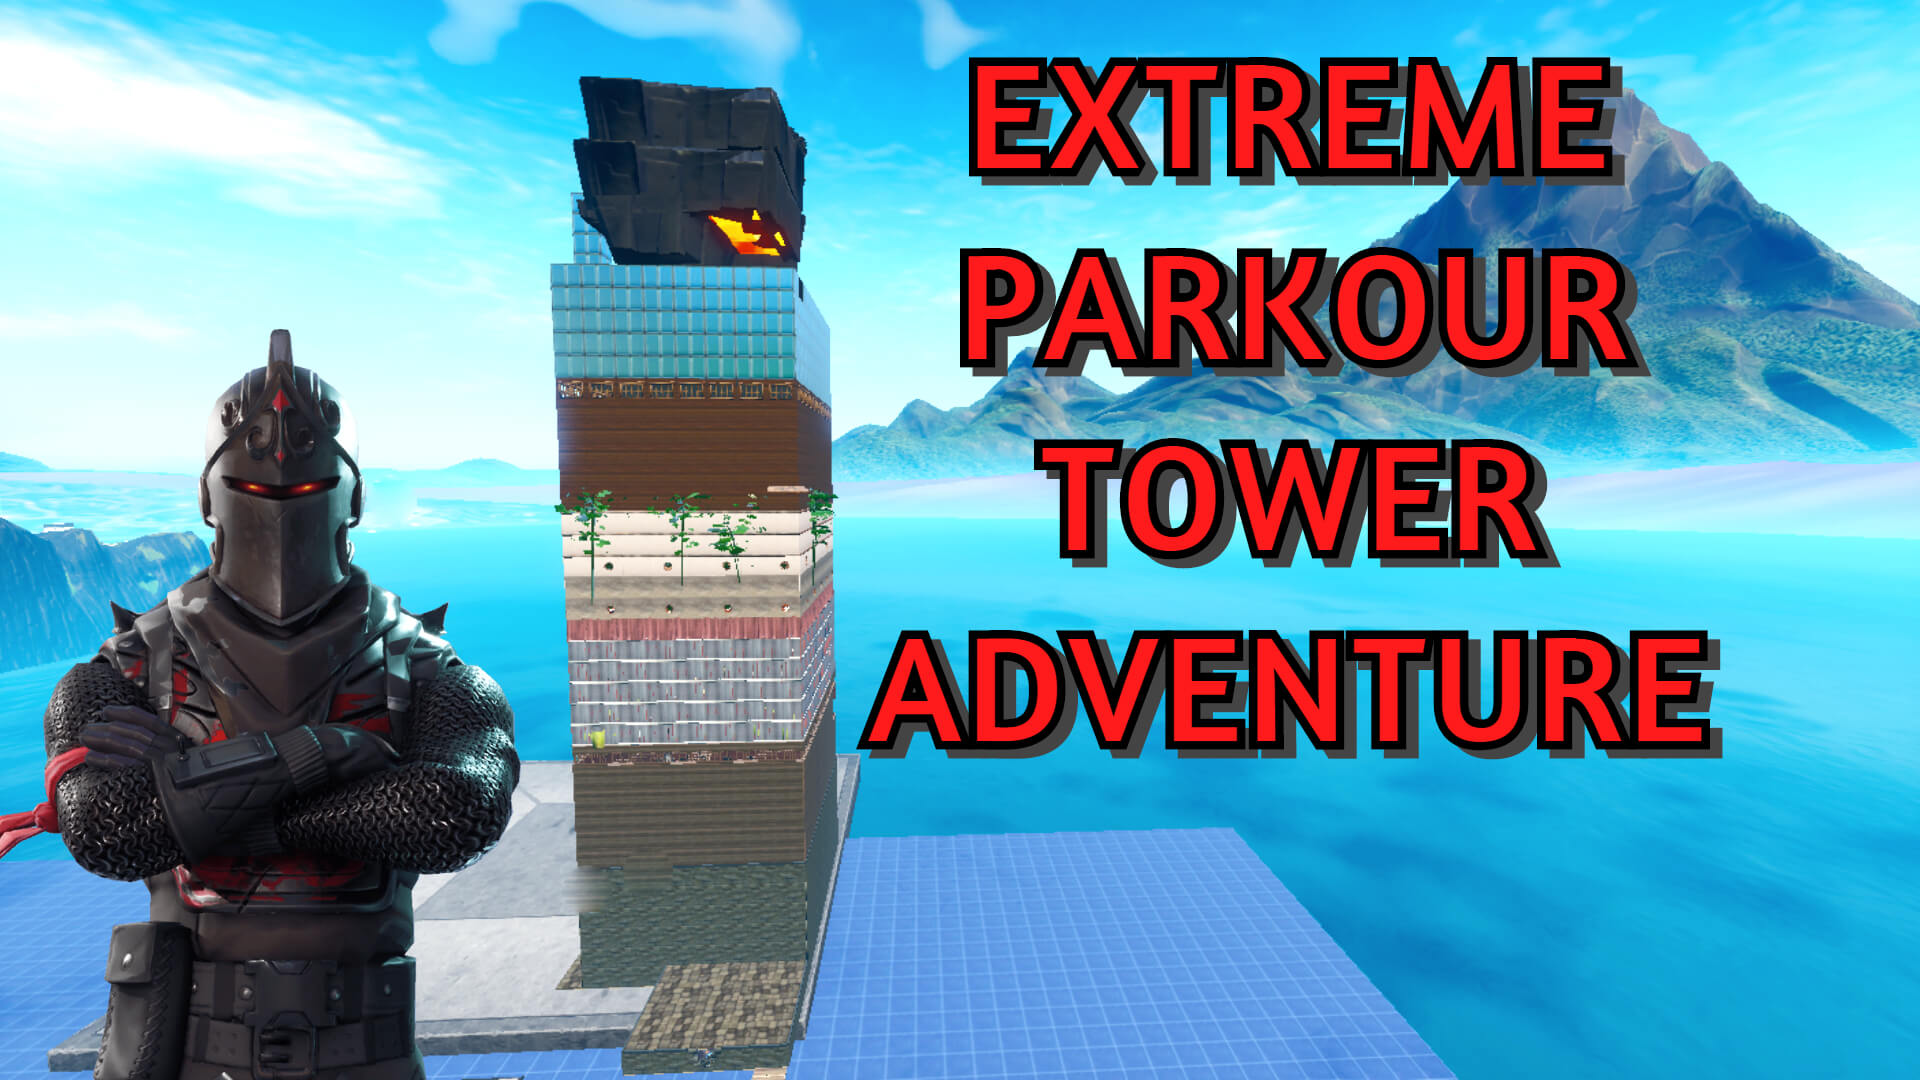 EXTREME PARKOUR ADVENTURE TOWER